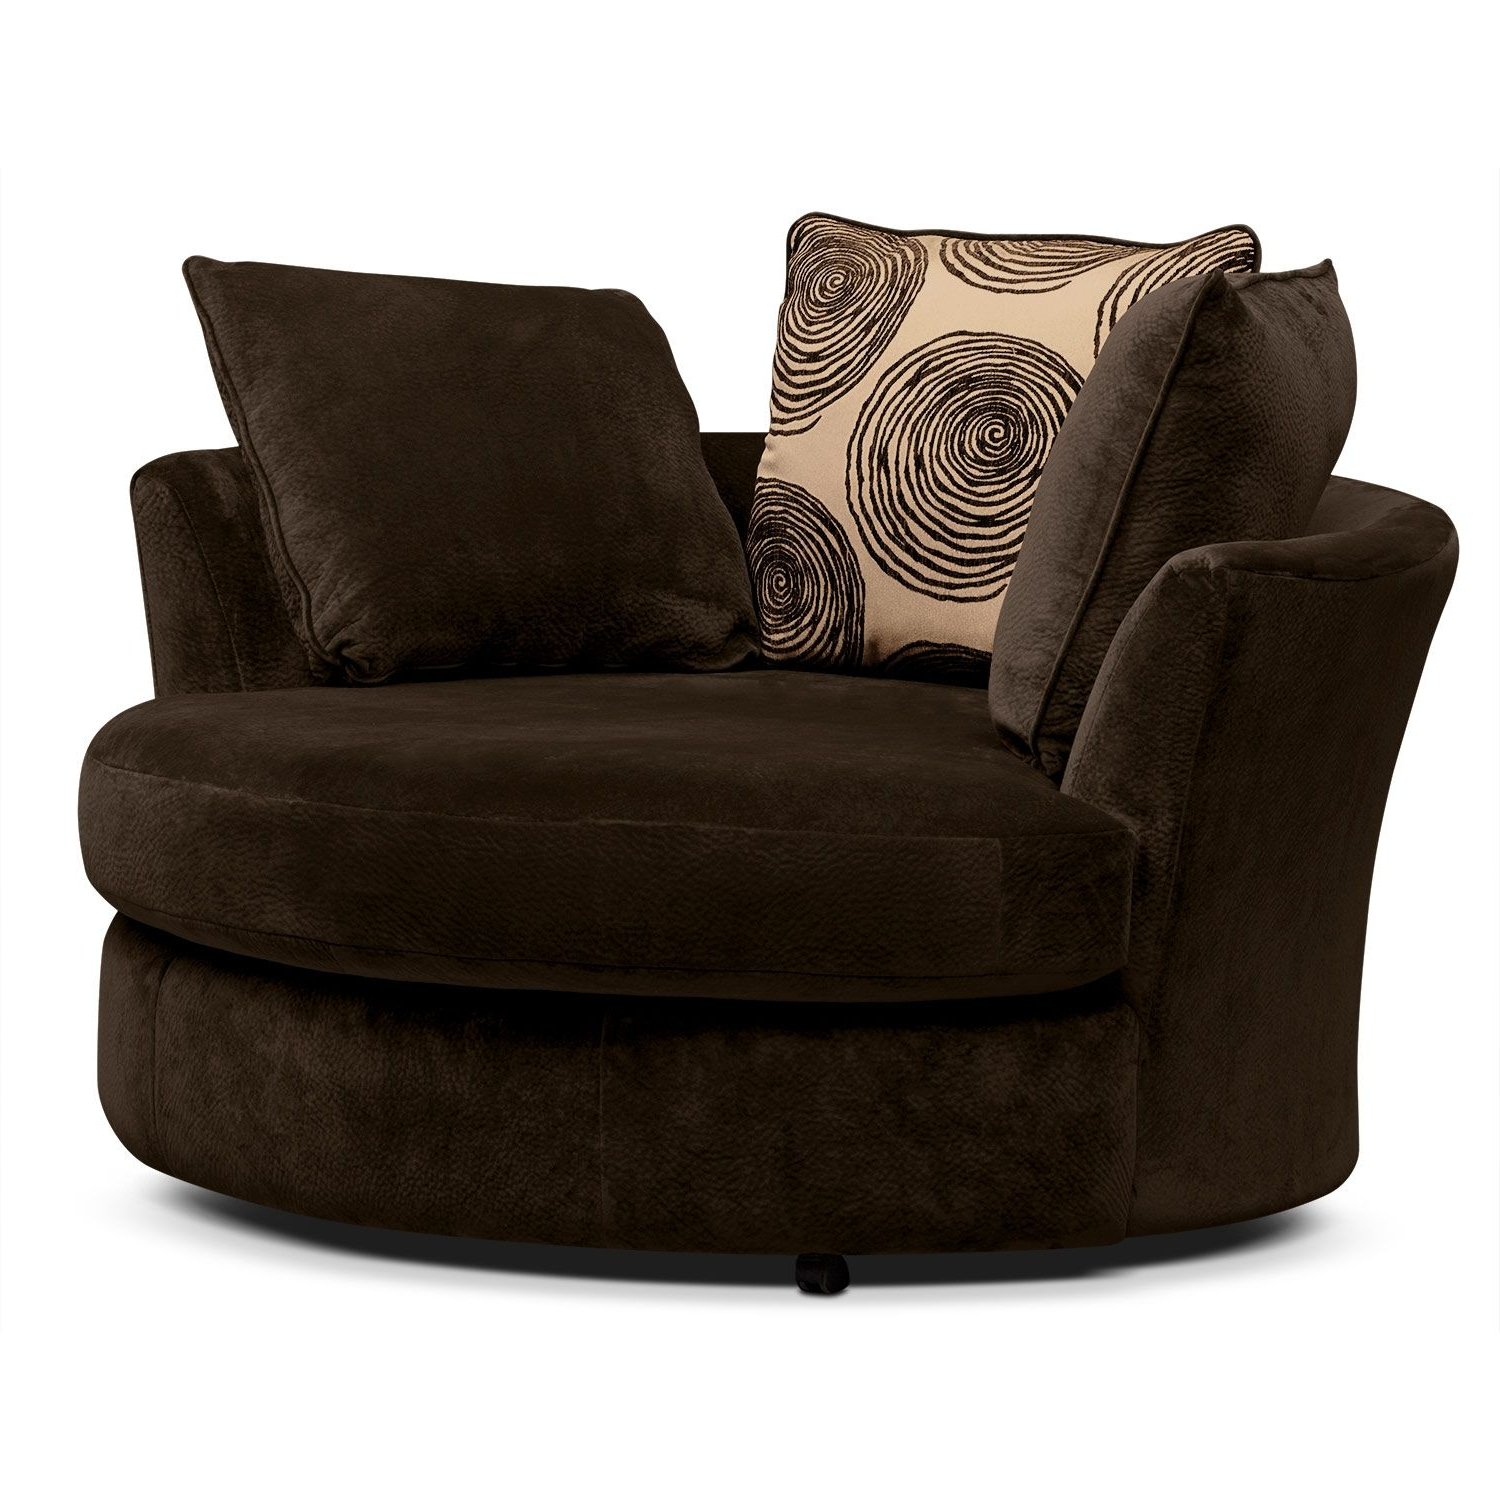 Newest Round Sofa Chair Living Room Furniture Within Living Room Furniture Catalina Chocolate Swivel Chair (Gallery 9 of 20)